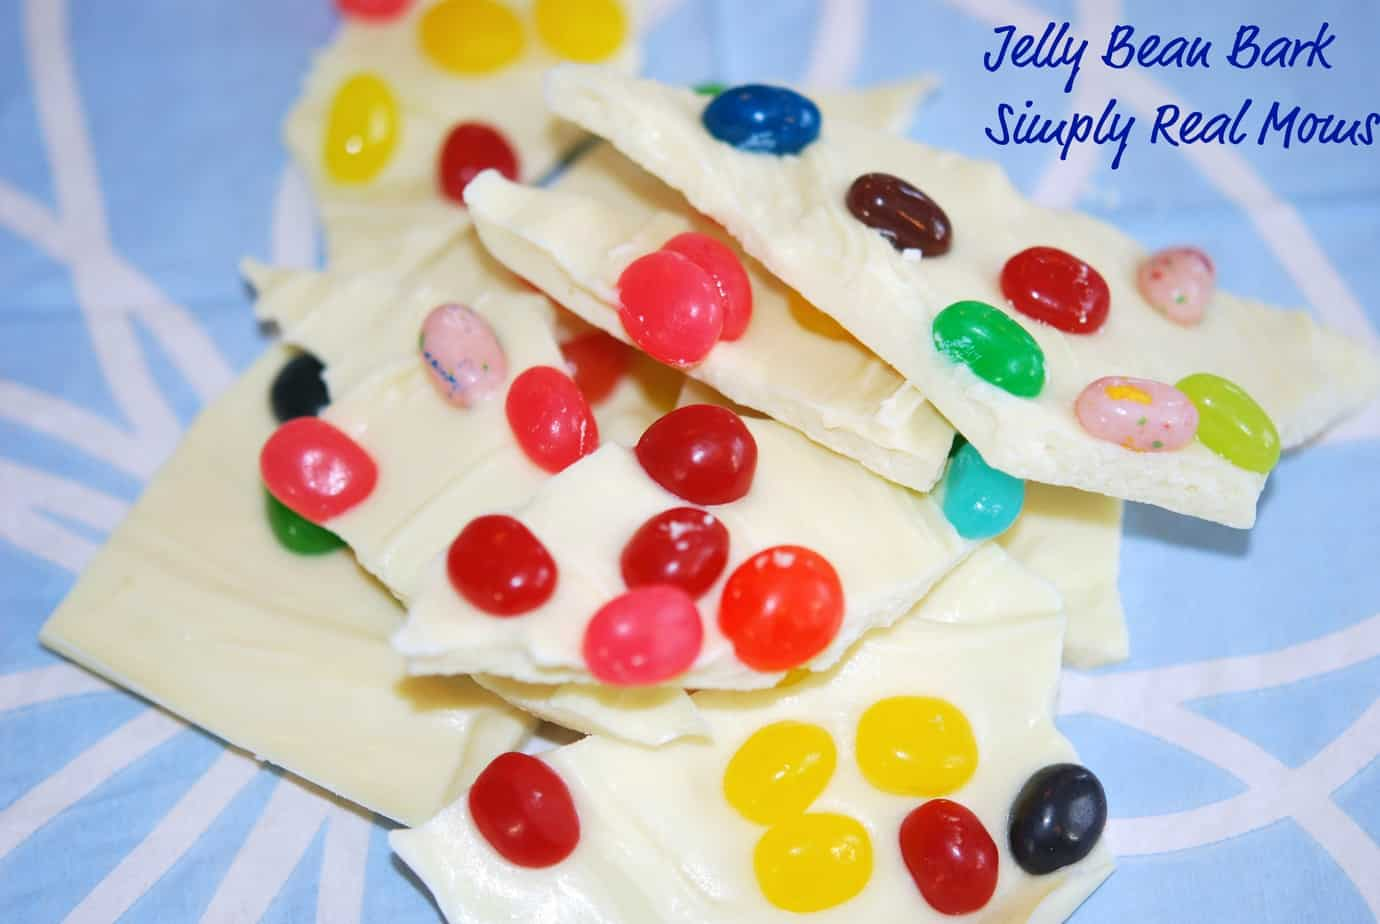 ... jelly bean fudge coolest homemade jelly beans 19 jelly bean easter